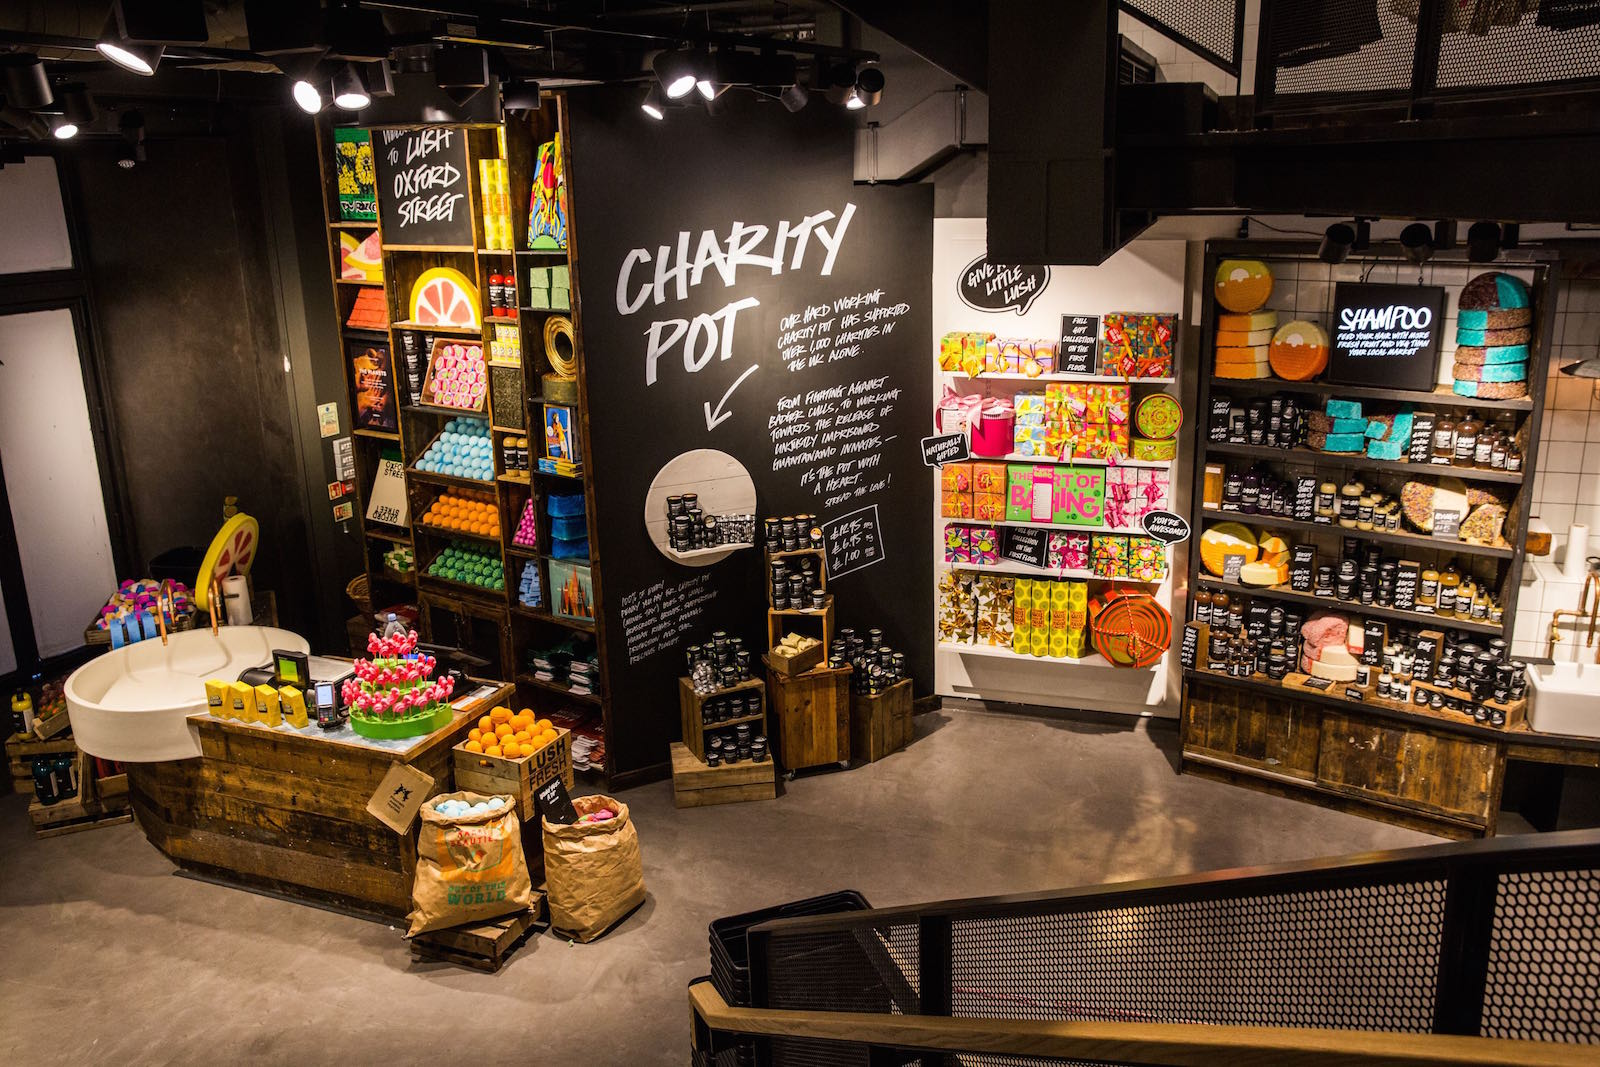 Lush Talk Clean Business Practices At Oxford Street The